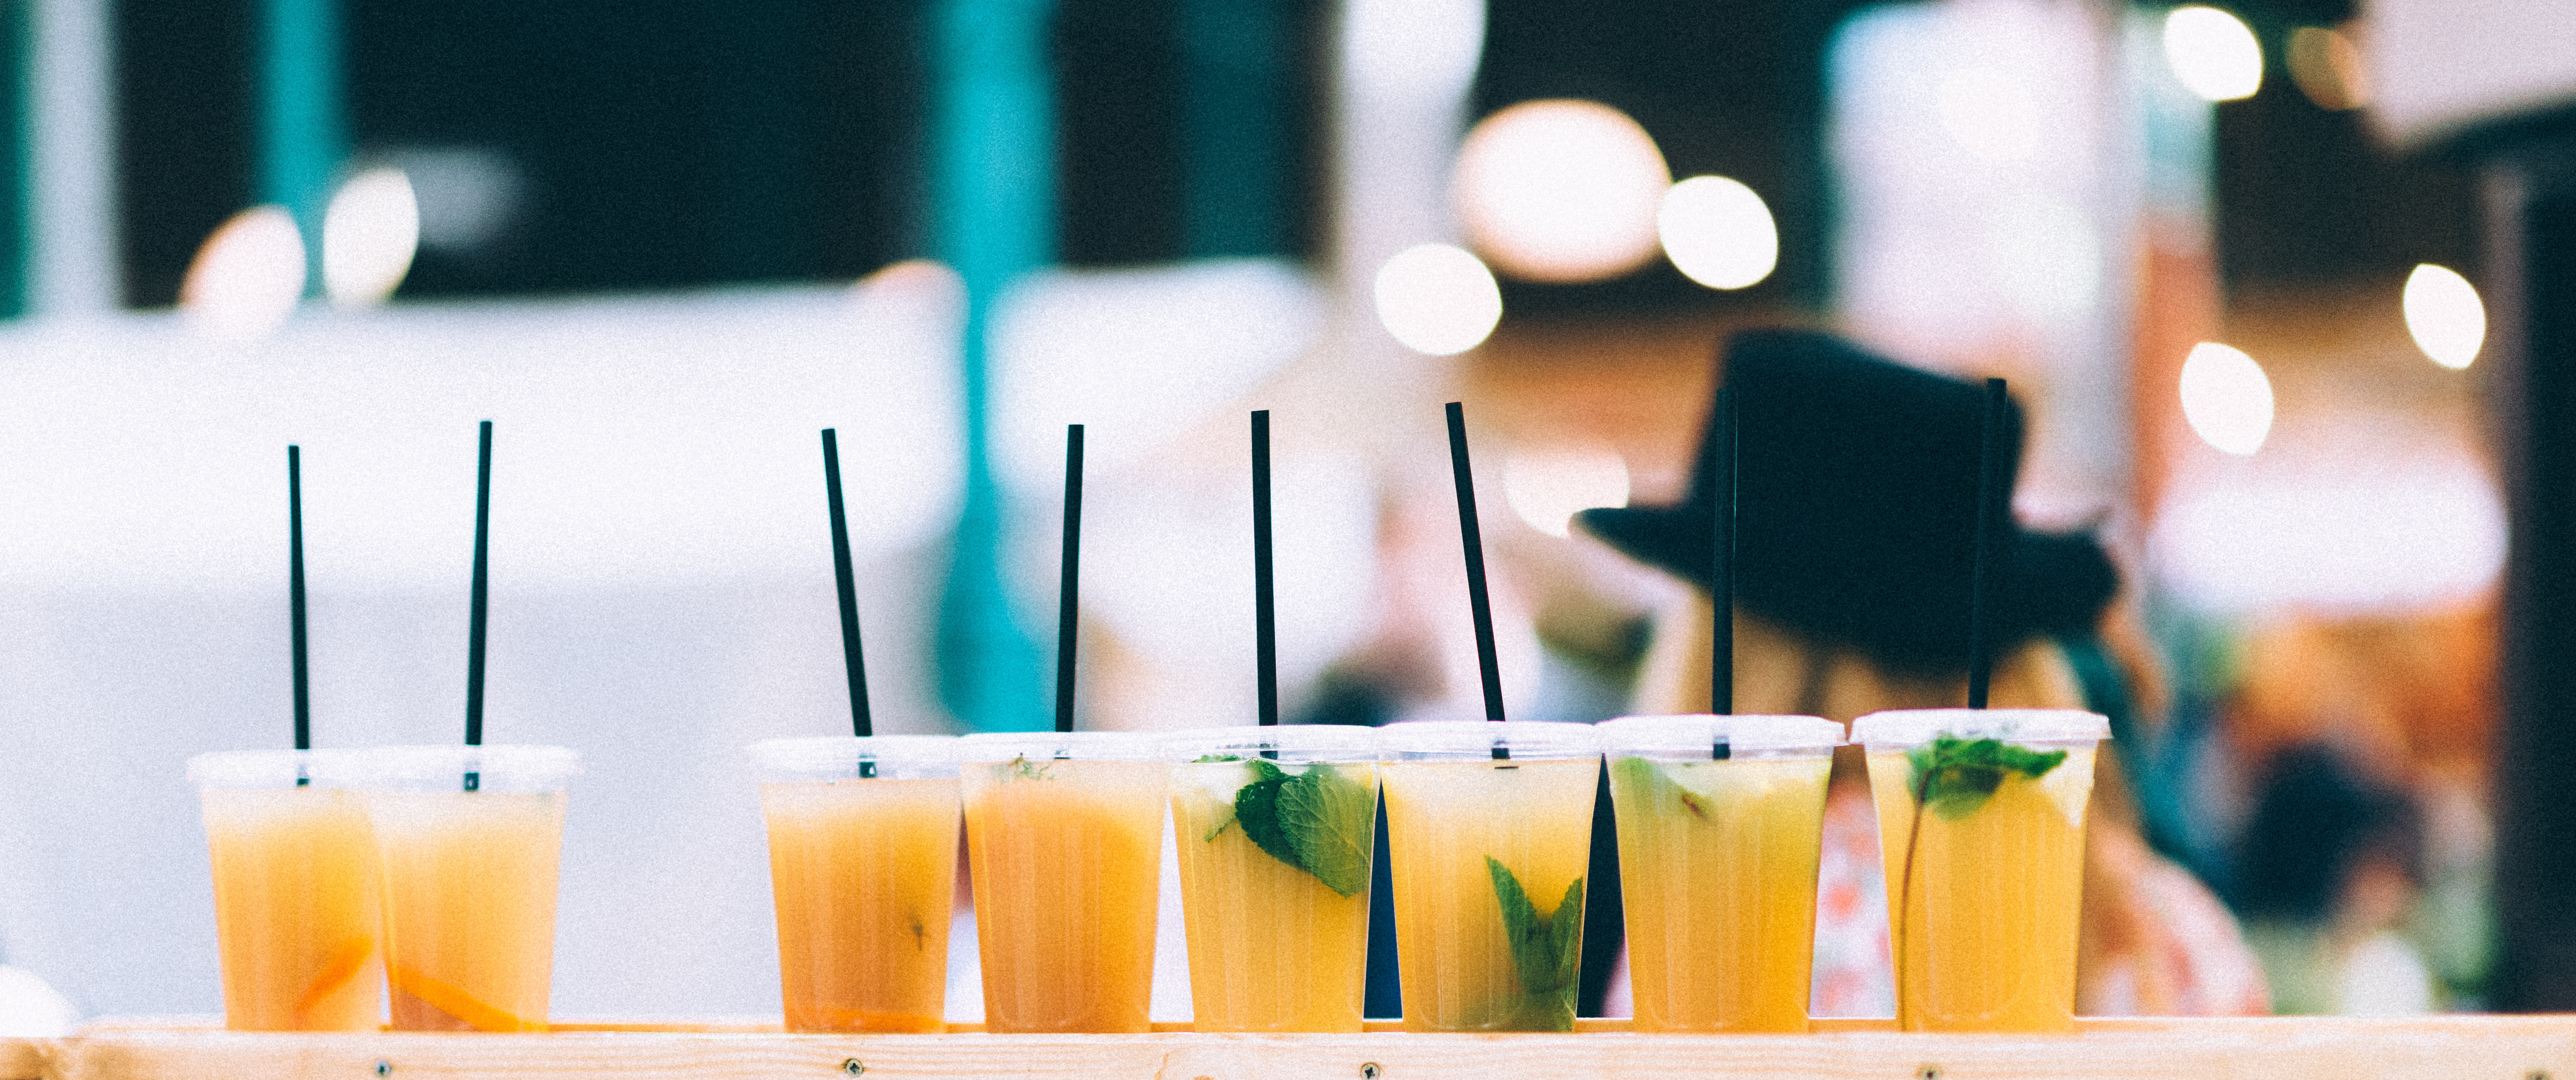 Orange cocktails with mint leaves and straws arranged in a row